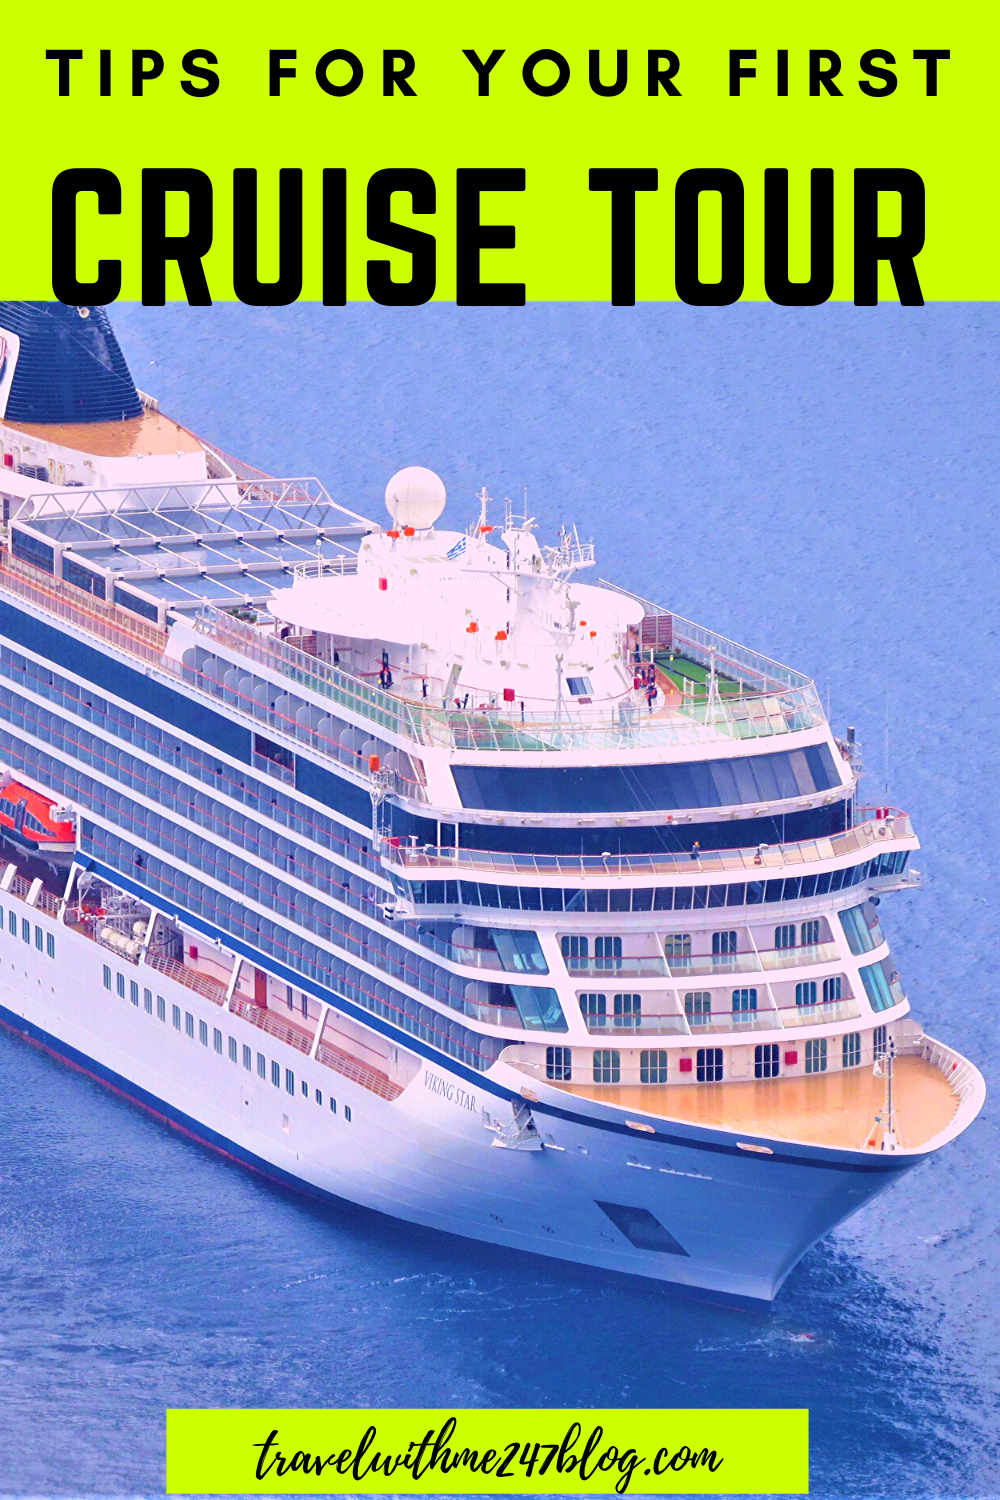 What To Look For When Booking A Cruise Cruise Ship Tips In 2020 How To Book A Cruise Cruise Travel Cruise